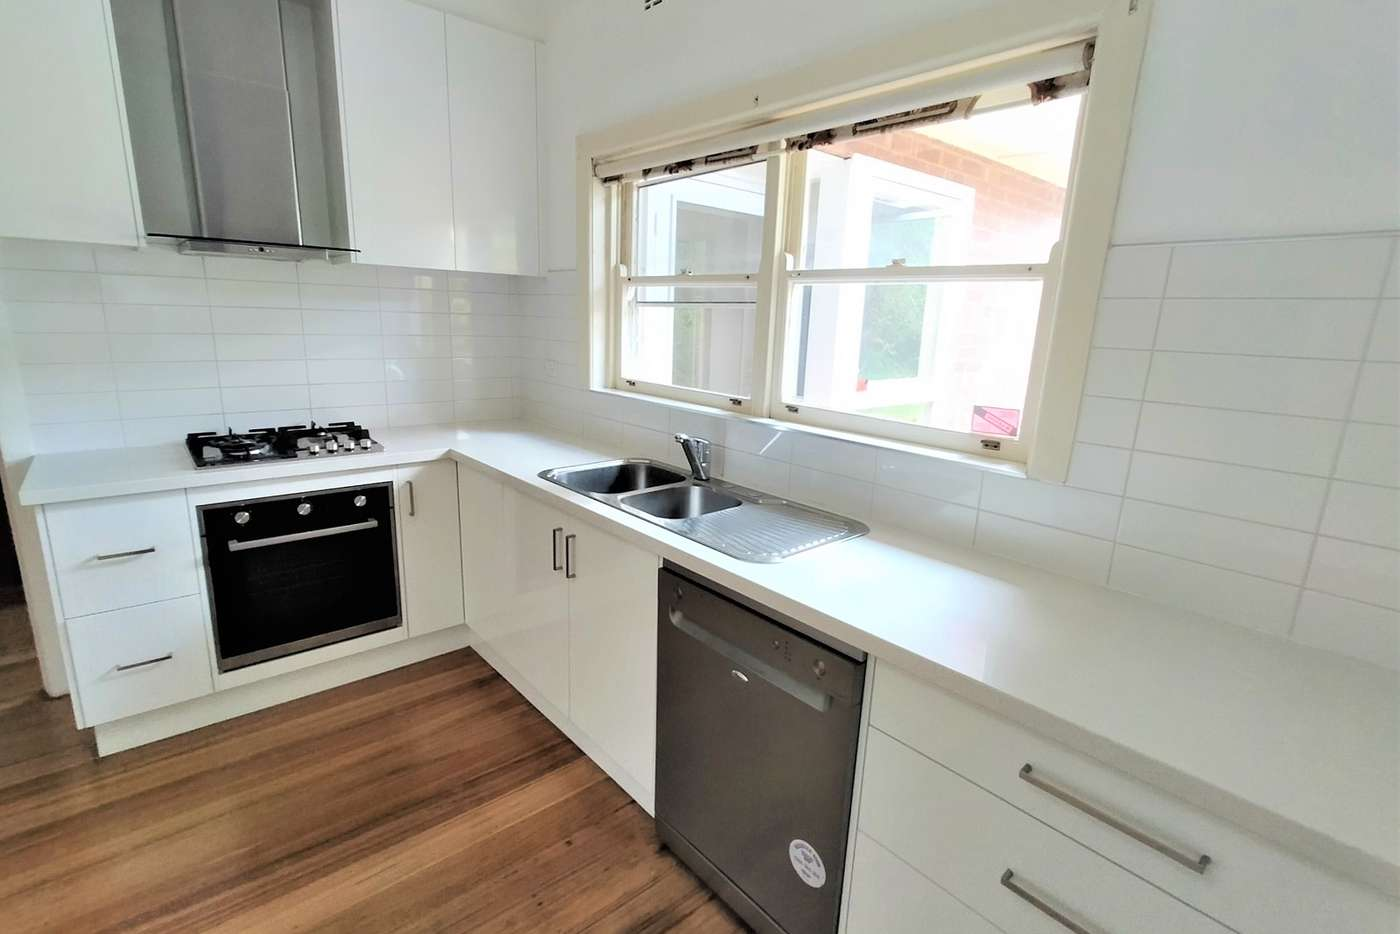 Main view of Homely house listing, 256 Elgar Rd, Box Hill South VIC 3128